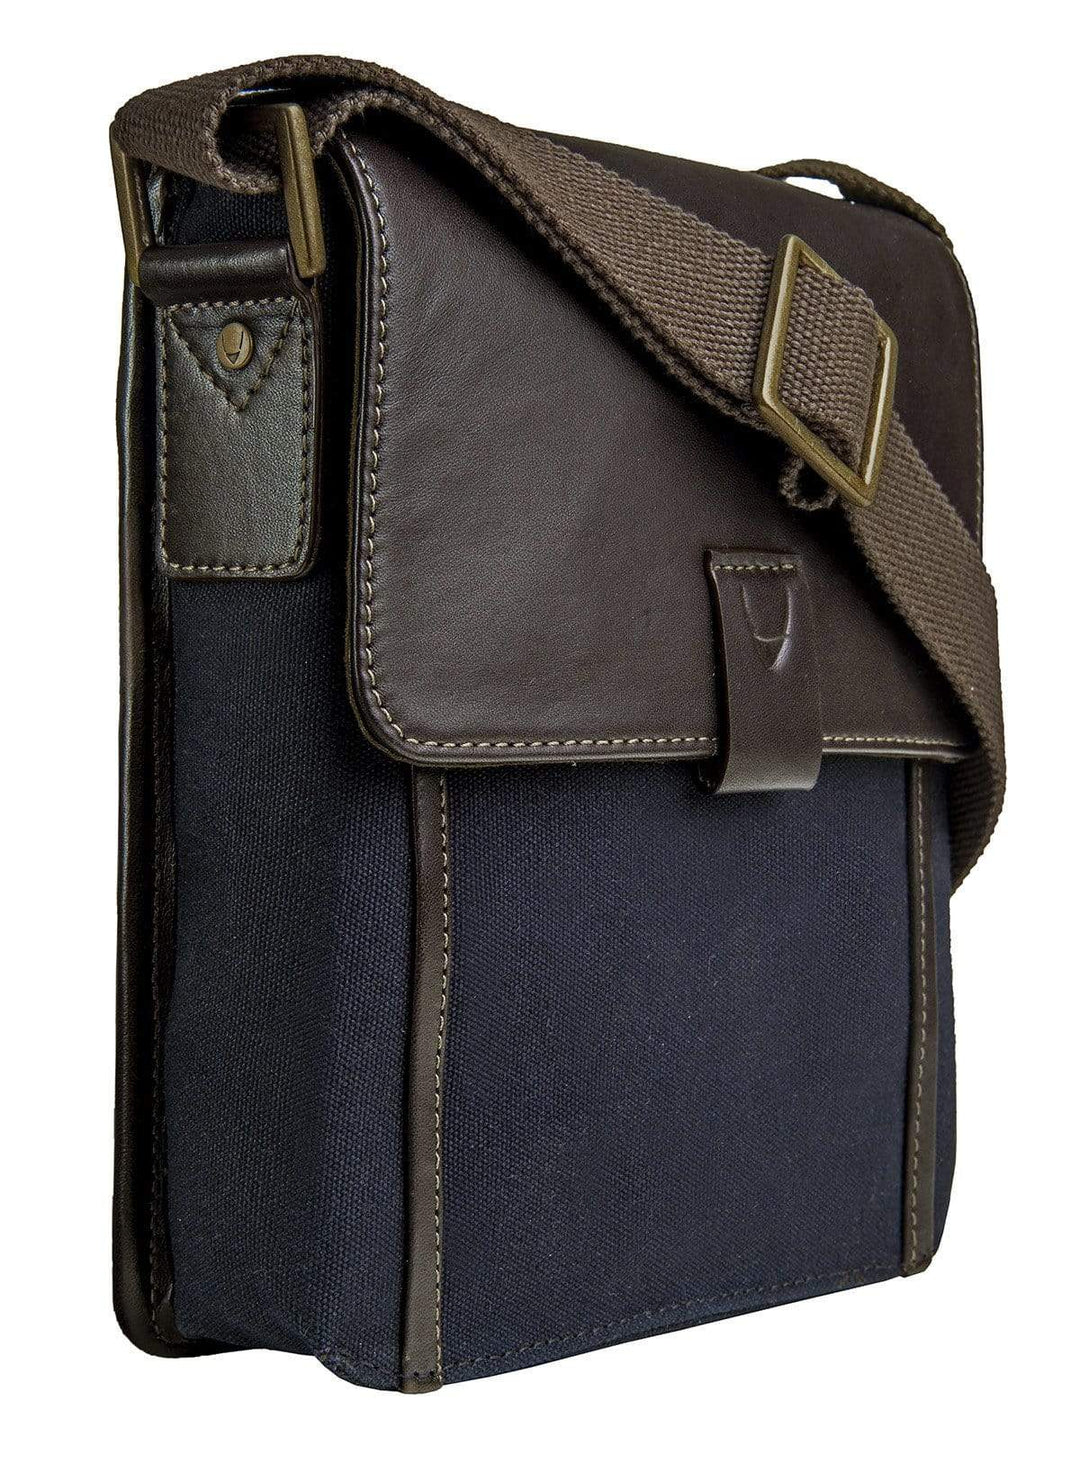 Hidesign Mens Leather & Canvas Cross Body Bag